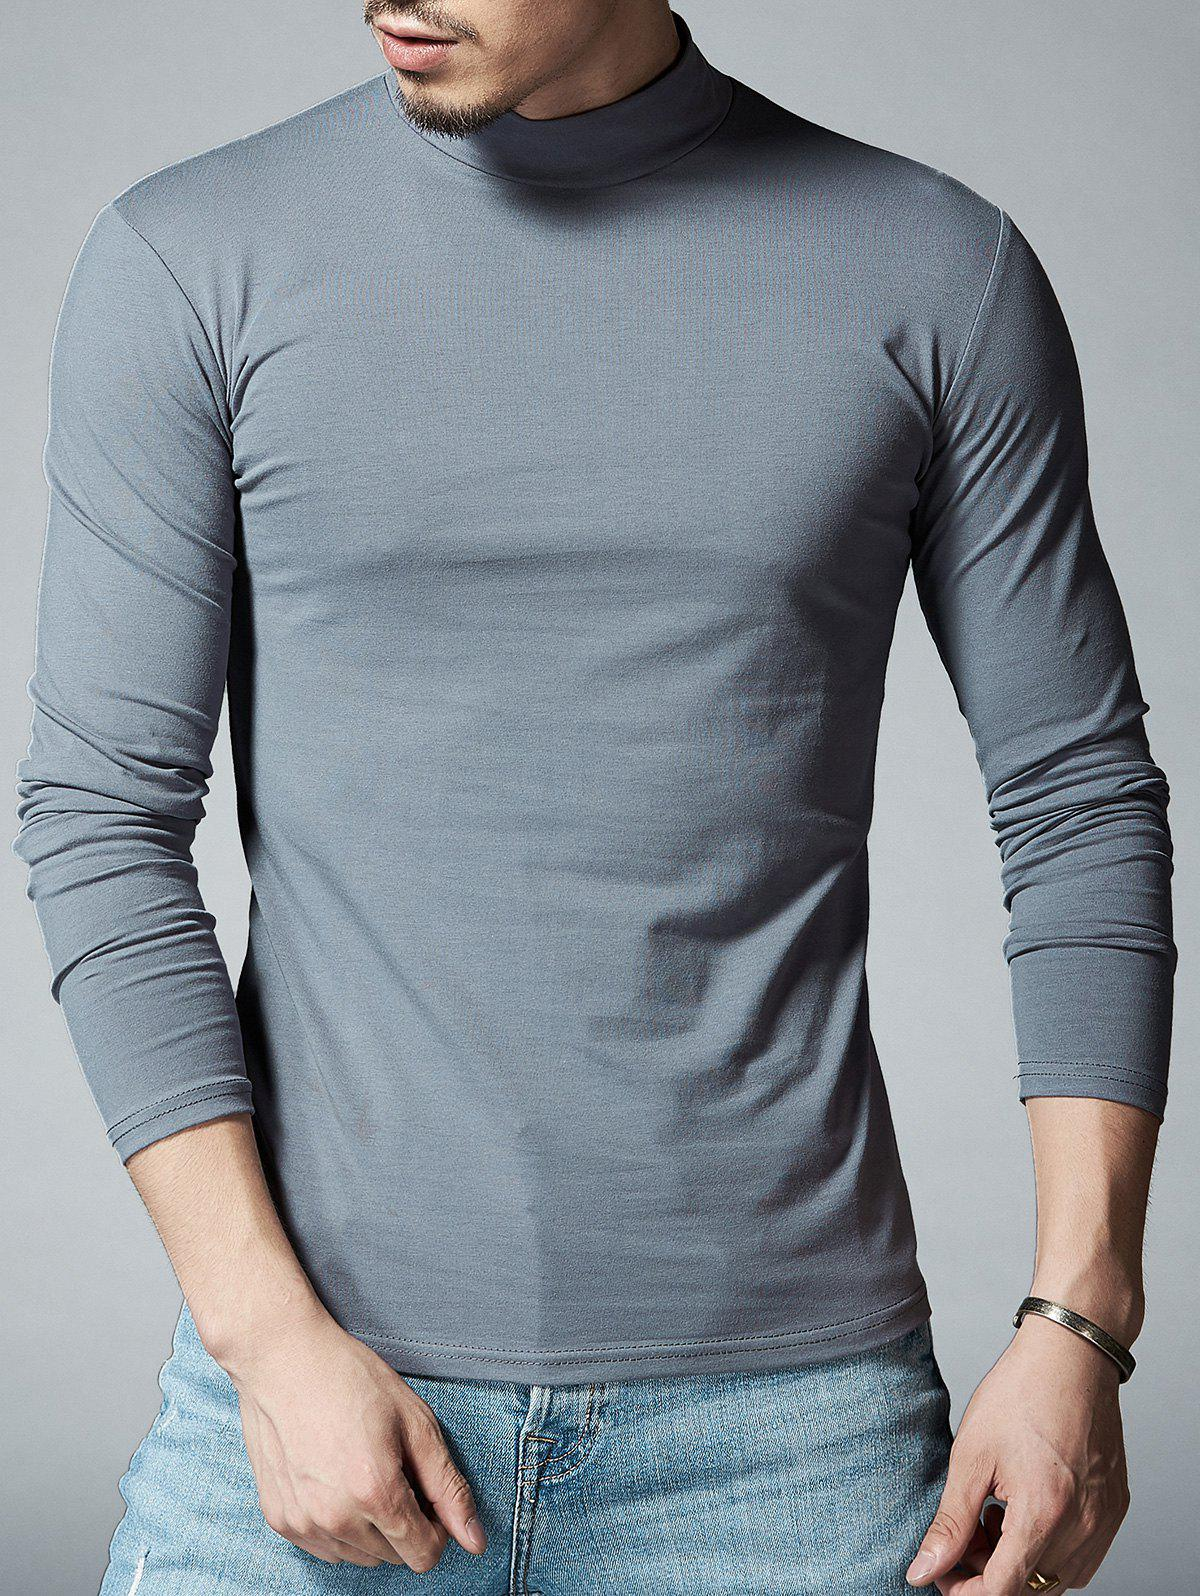 Stretch Mock Neck Long Sleeve T-shirt - DEEP GRAY L